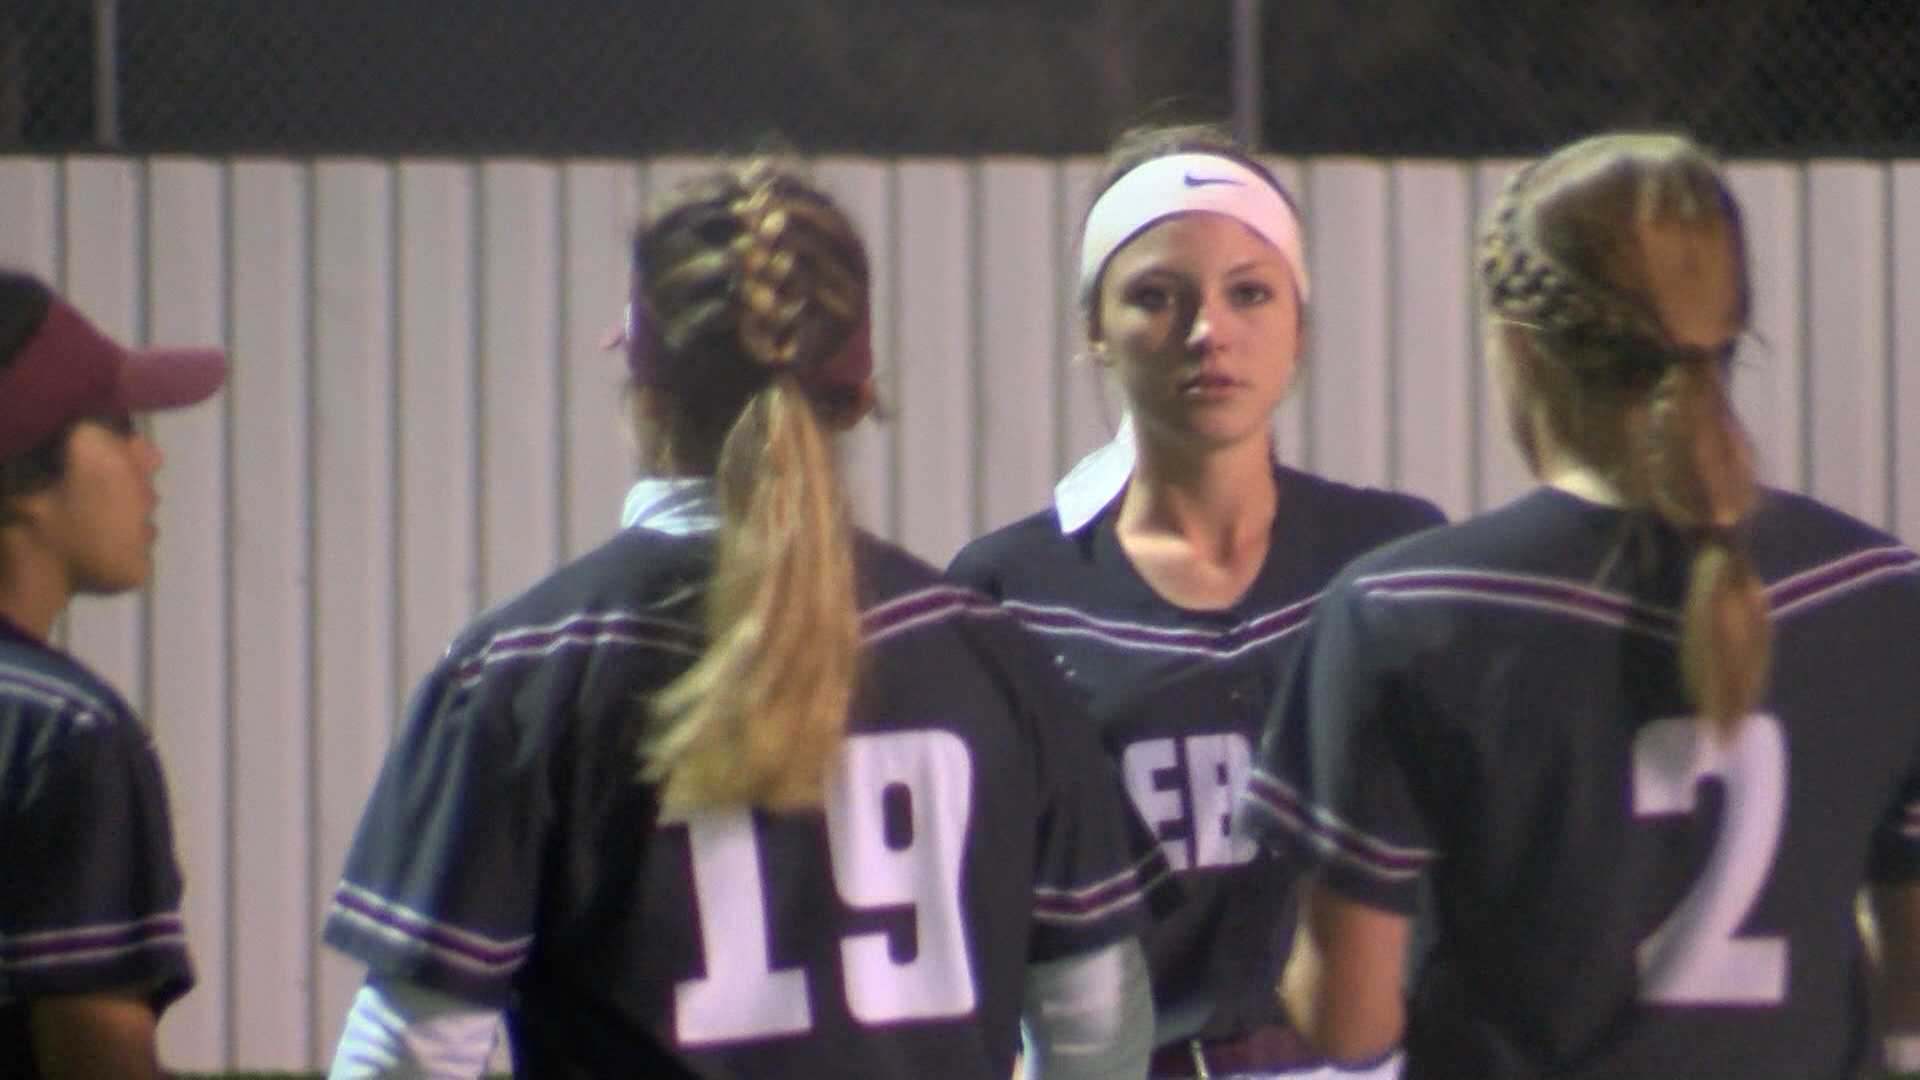 lee softball_1498077940212.jpg